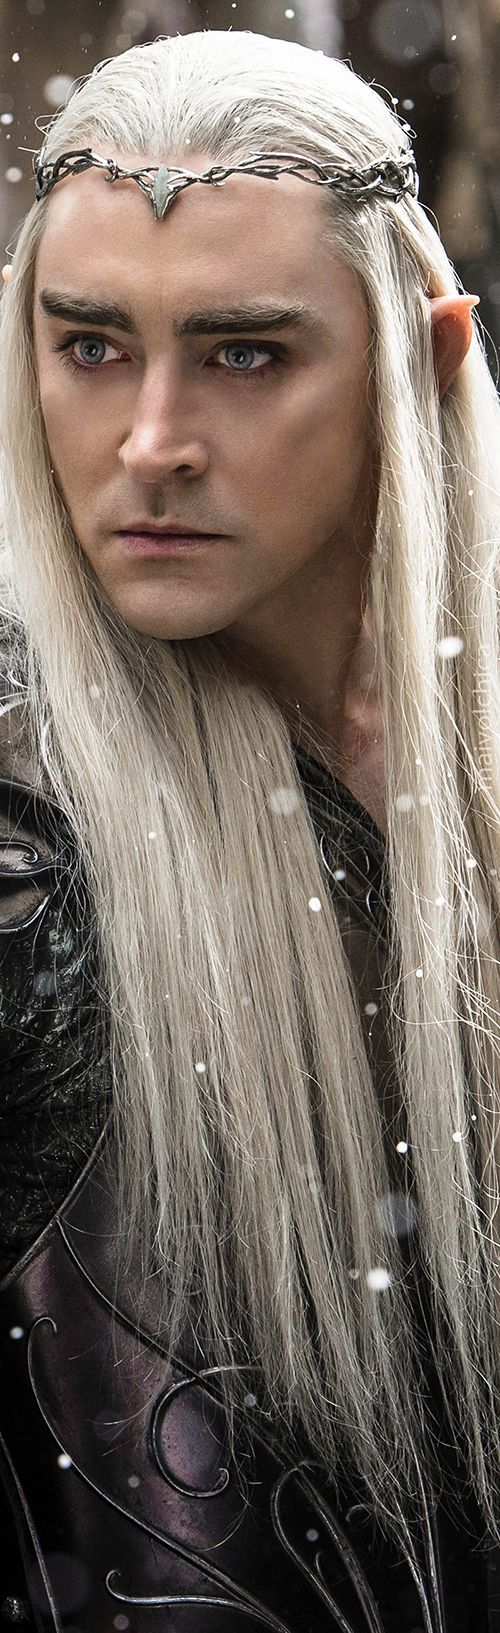 Thranduil, son of Oropher, was an Elven king who ruled over the Woodland Realm in the Second and Third Ages.